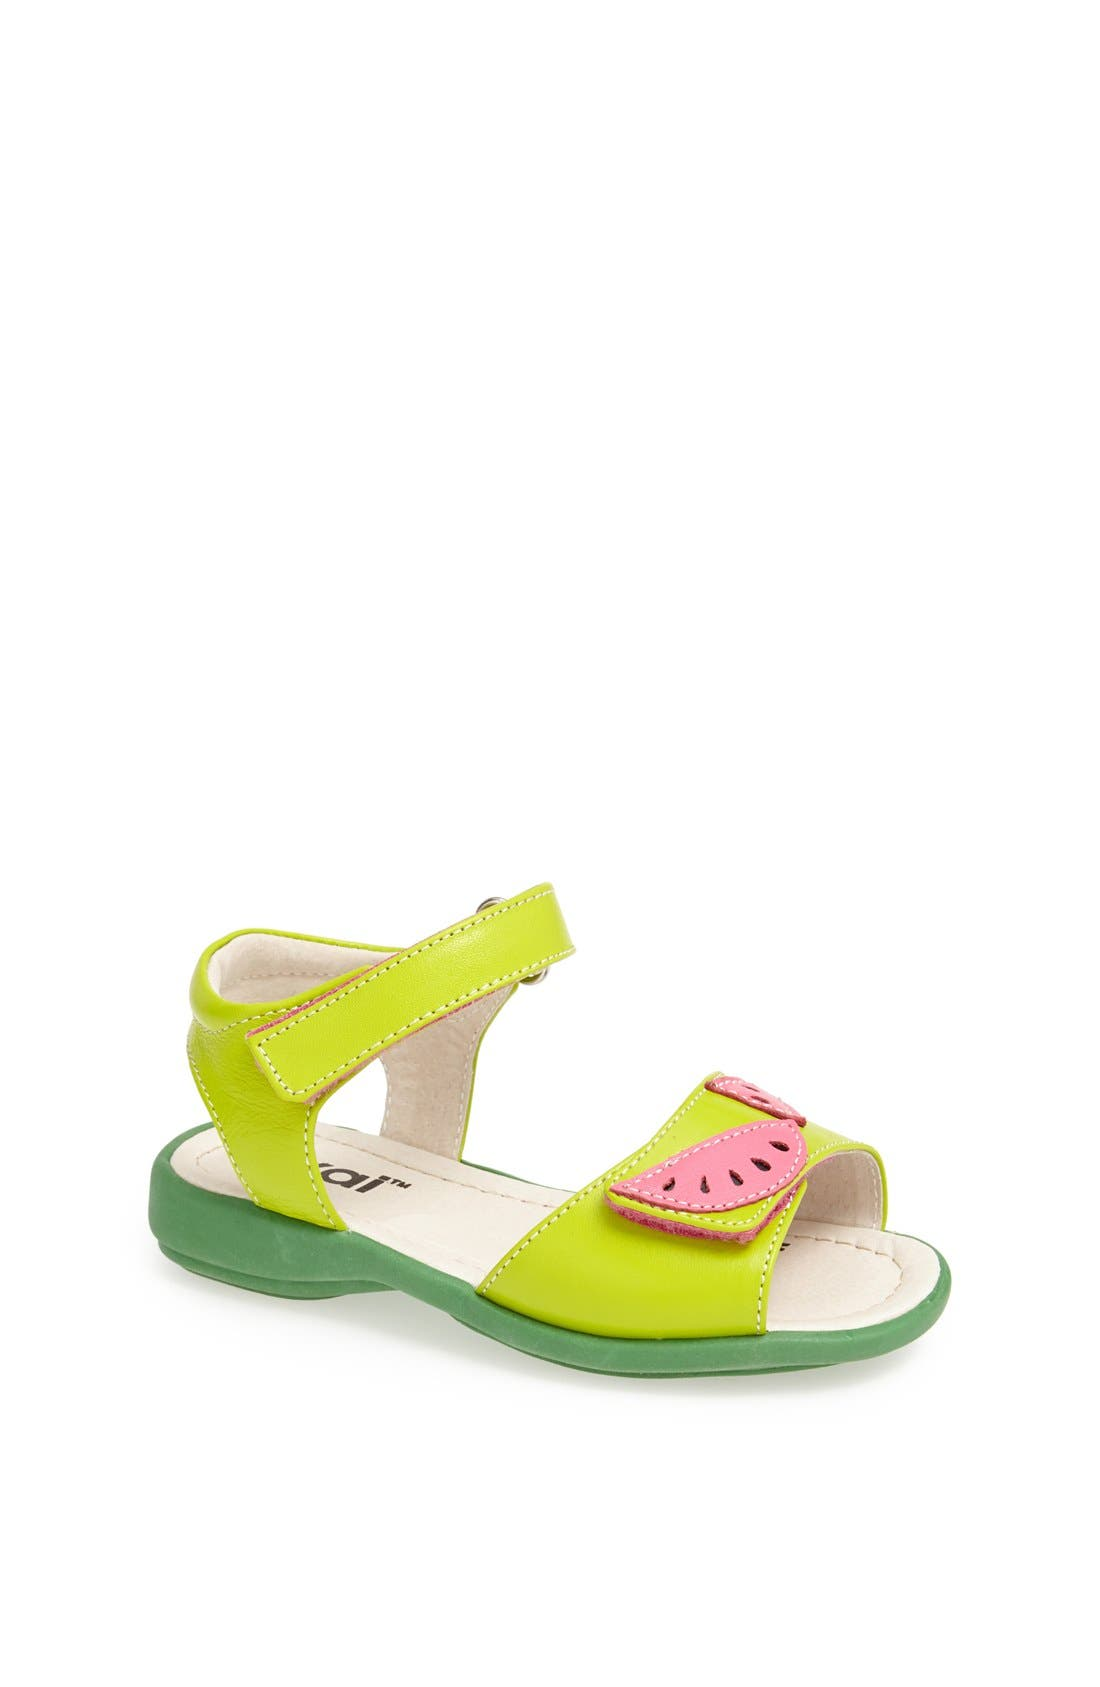 Alternate Image 1 Selected - See Kai Run 'Alexis' Sandal (Toddler & Little Kid)